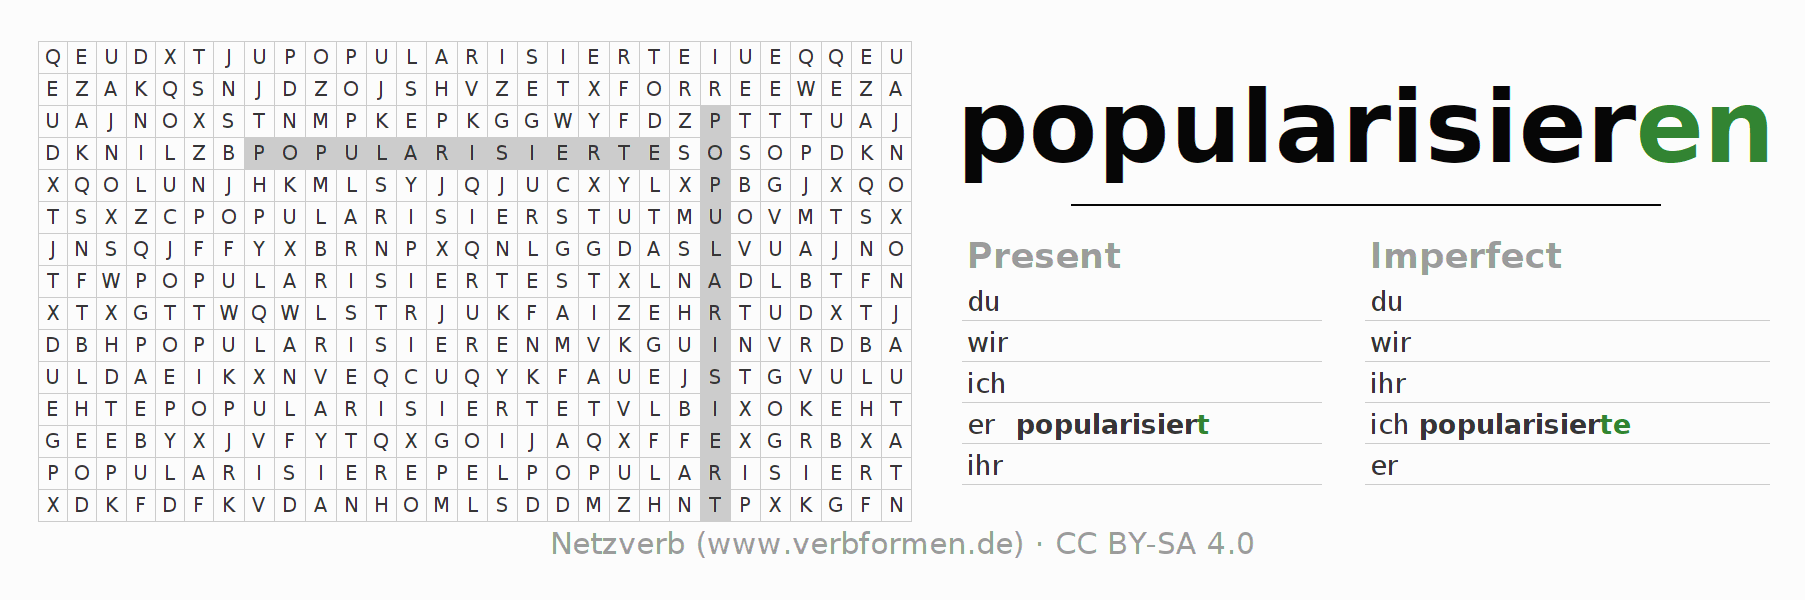 Word search puzzle for the conjugation of the verb popularisieren